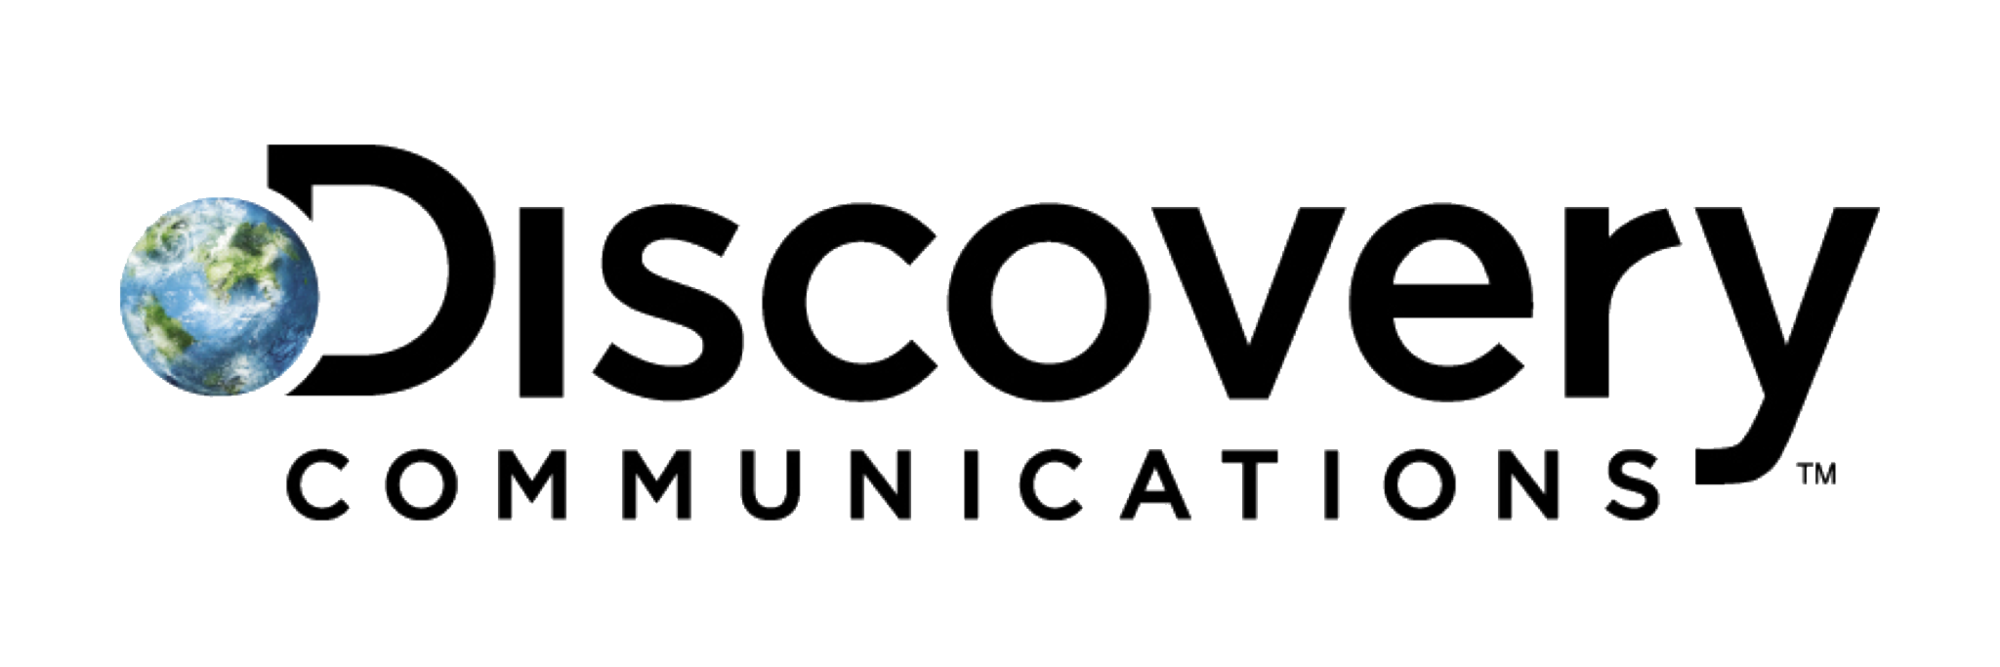 Discovery_Communications_logo.png